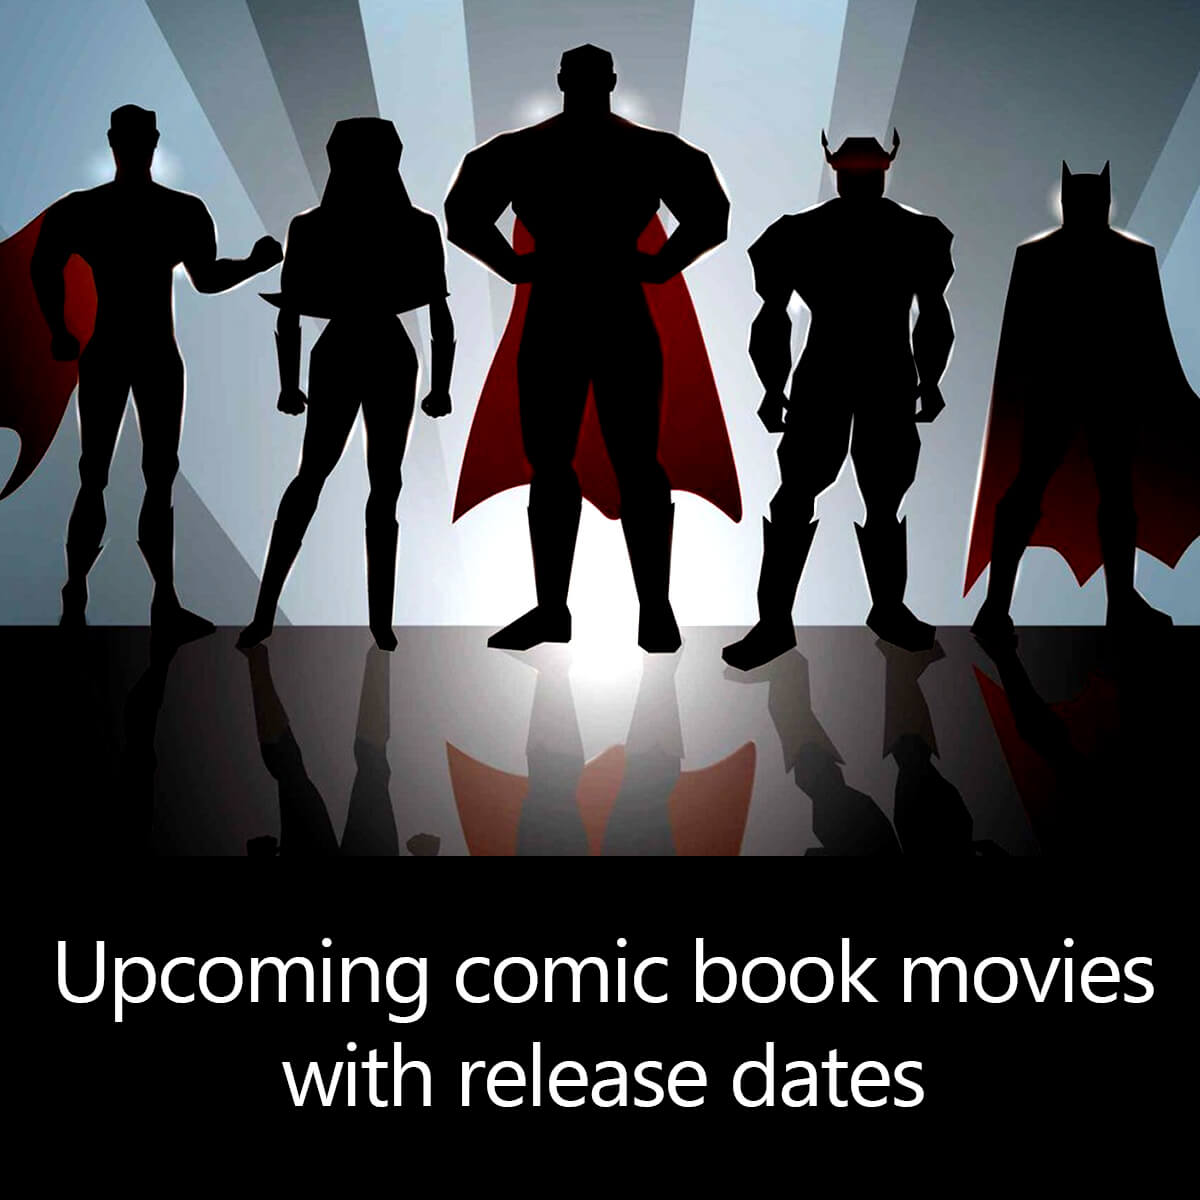 Upcoming comic book movies with release dates